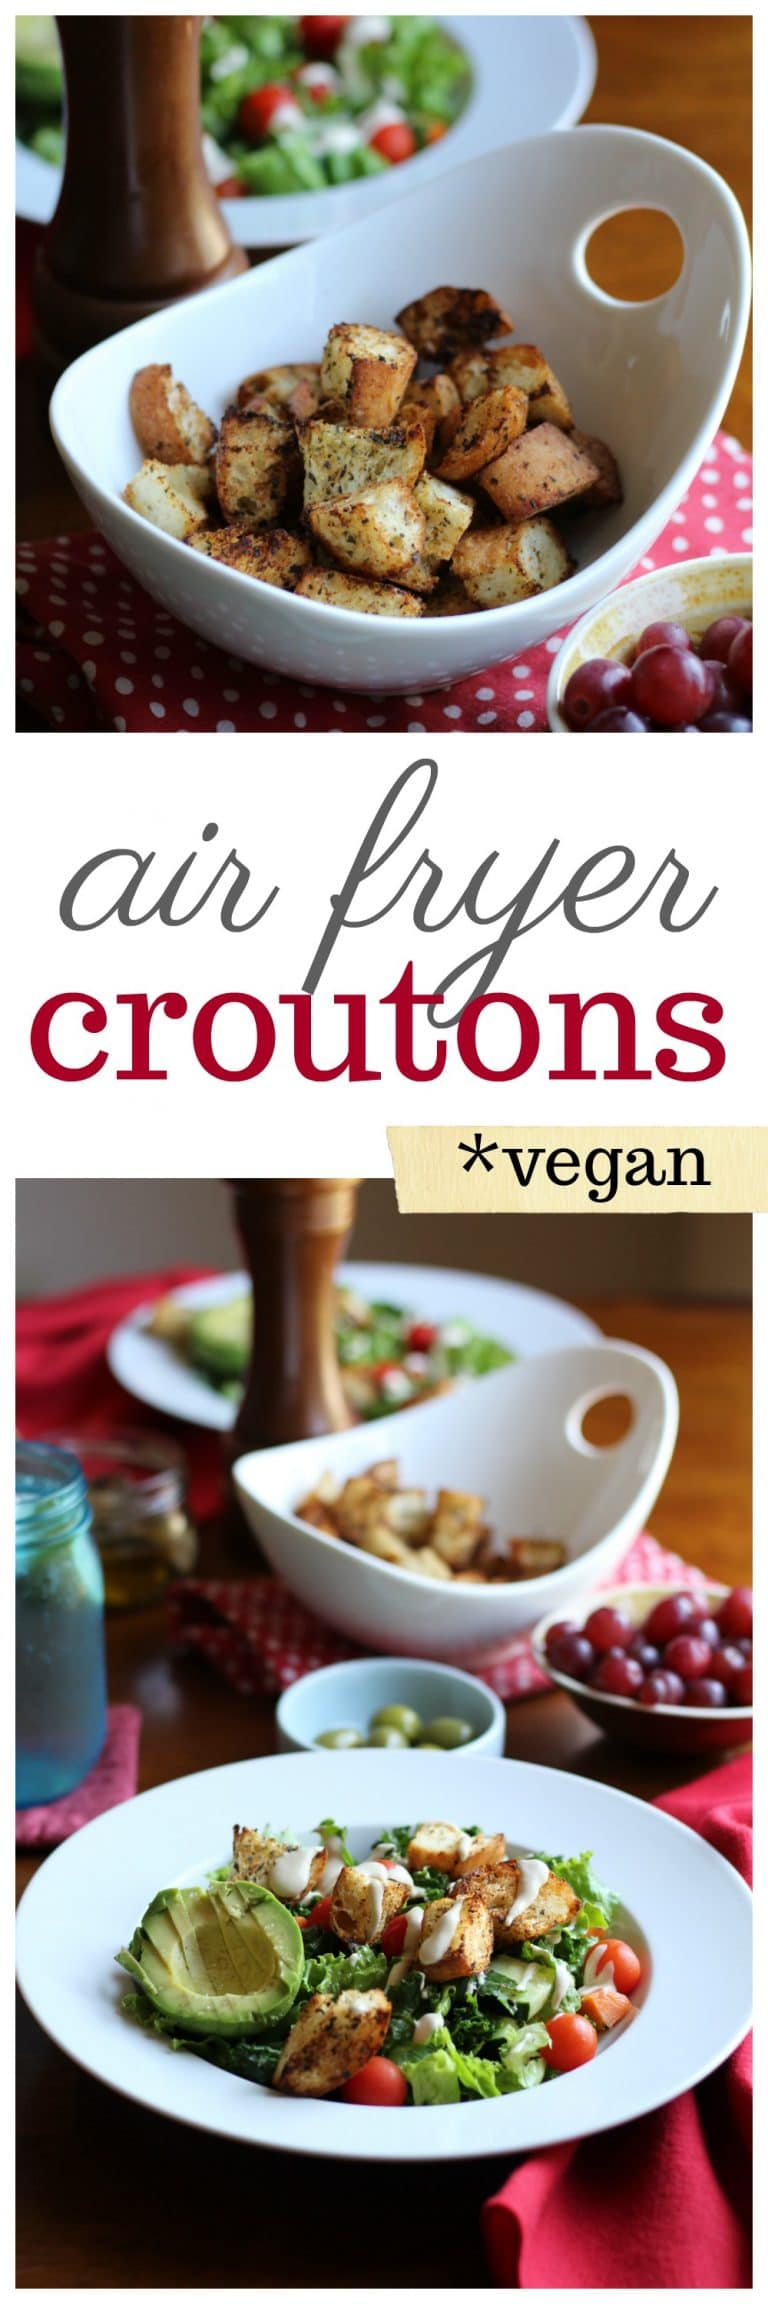 Air fryer croutons: Repurpose leftover bread into the perfect salad topper. Add crunch to lunch! | cadryskitchen.com